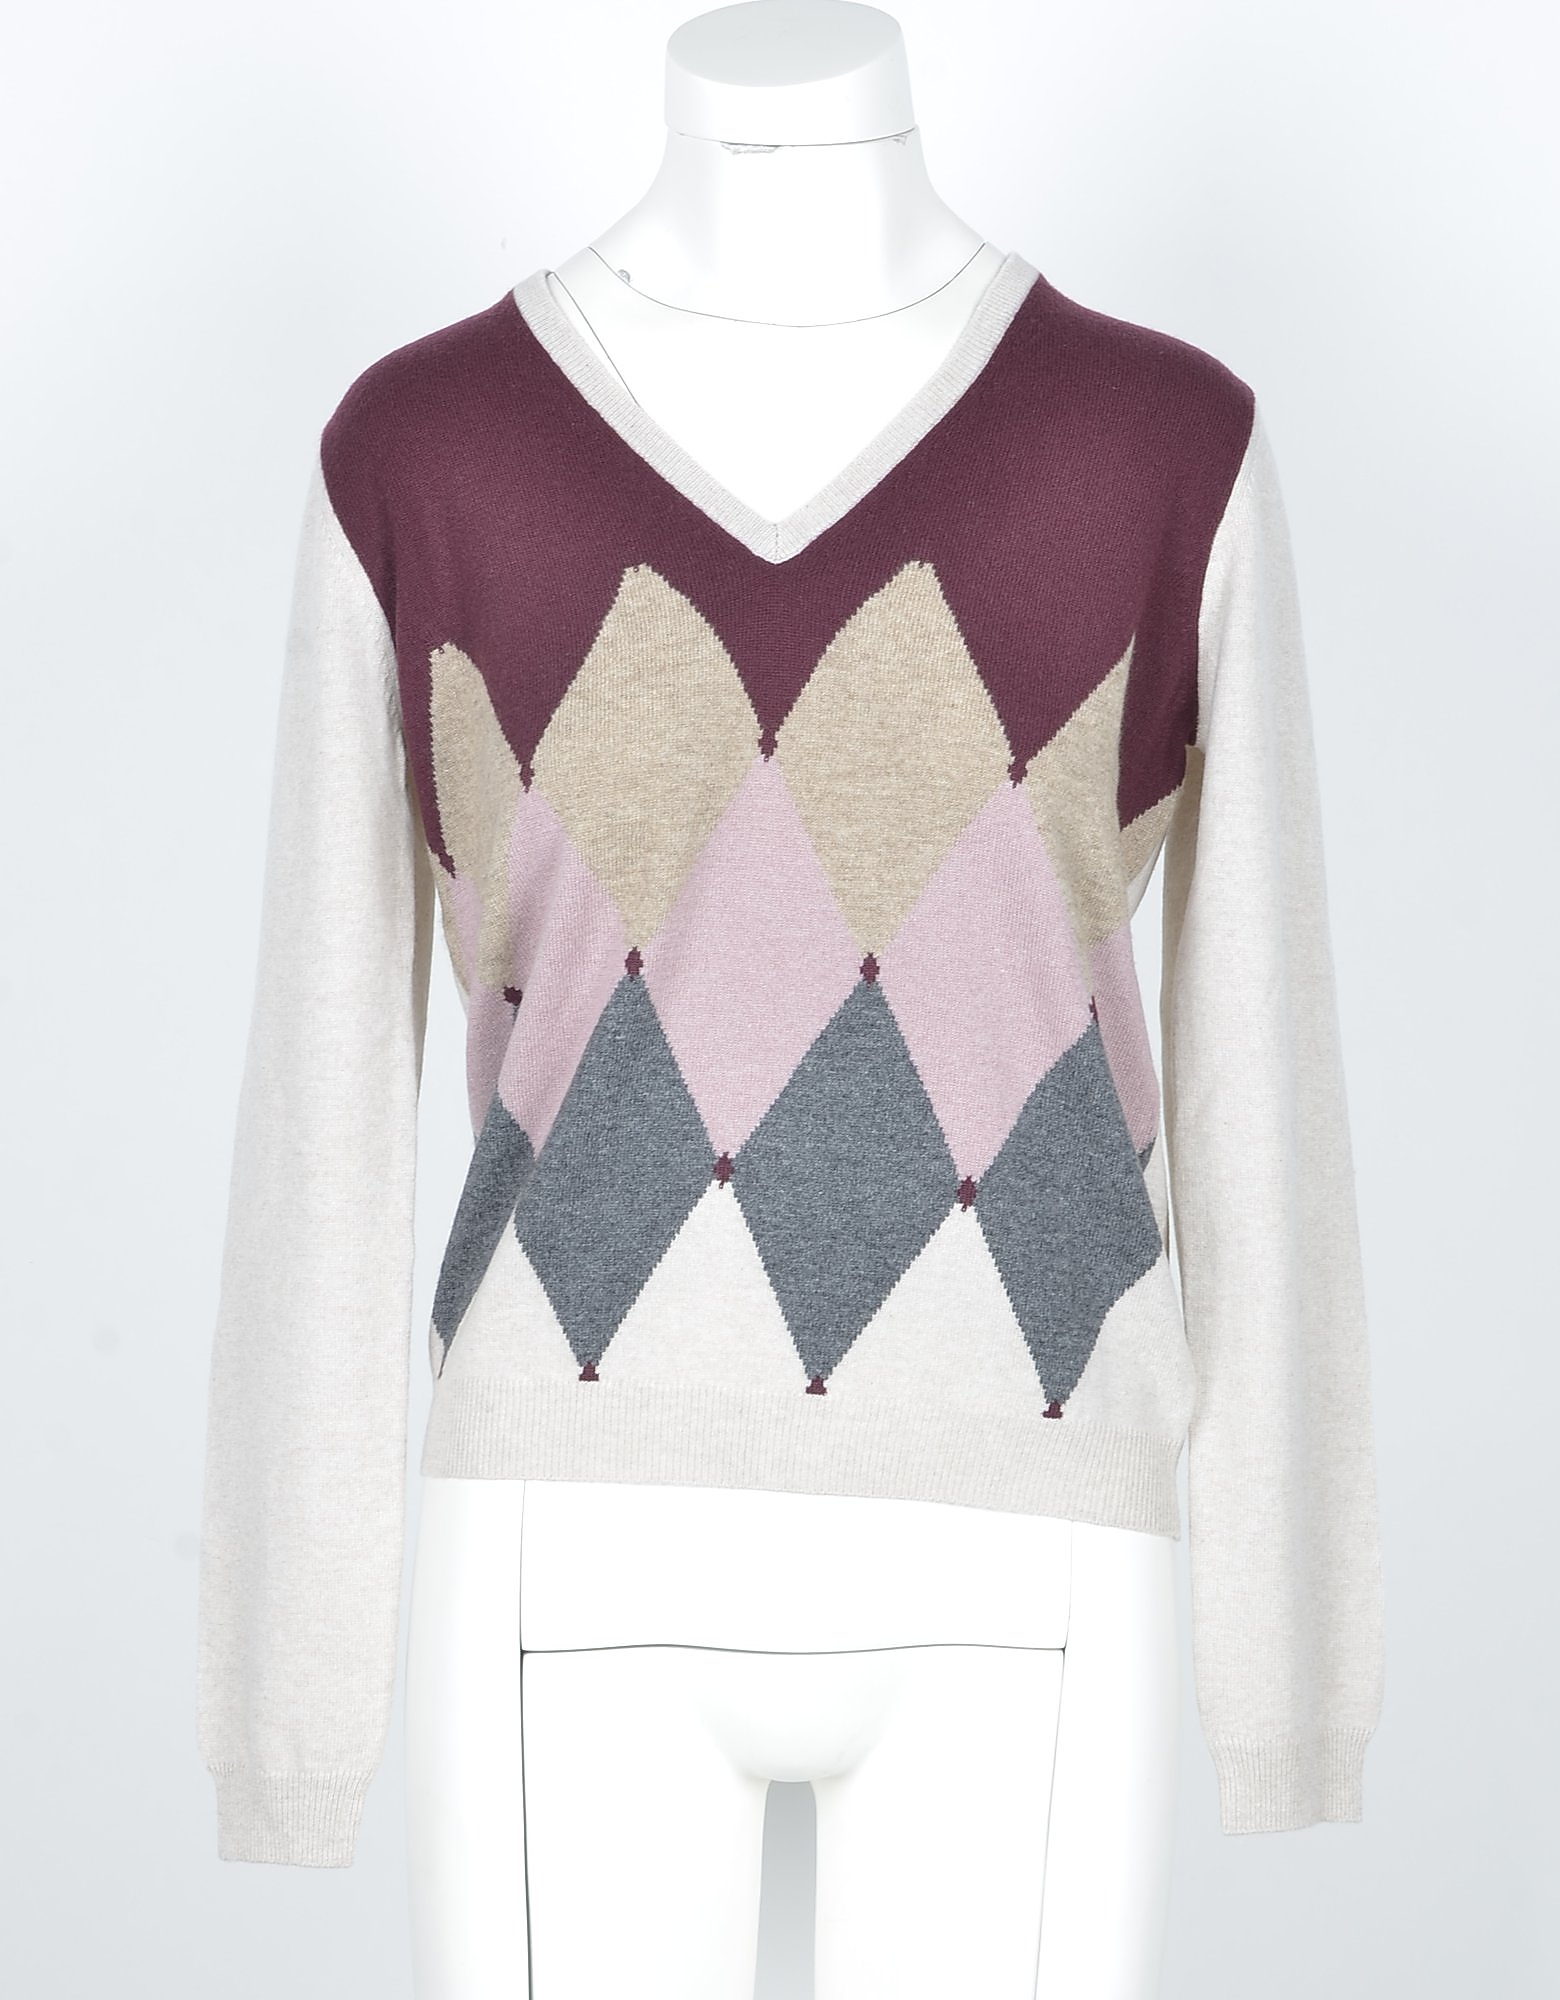 Ballantyne Designer Knitwear, Beige & Bordeaux Cashmere Women's V-neck Sweater w/Argyle Inlay